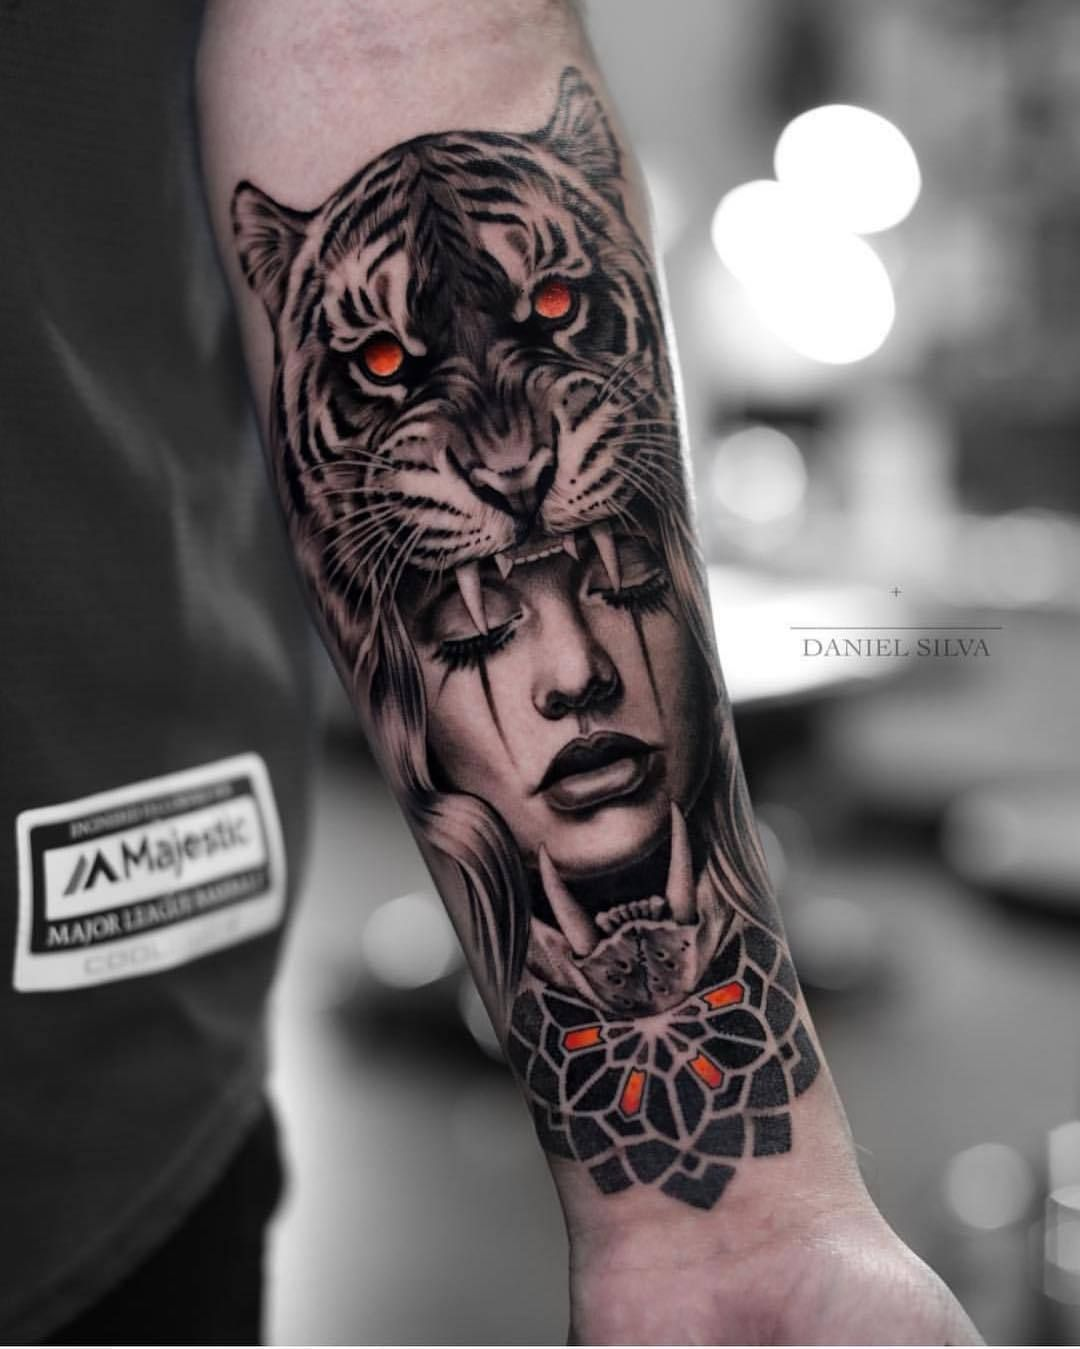 Daniel Silva Here's another amazing realistic tattoo by